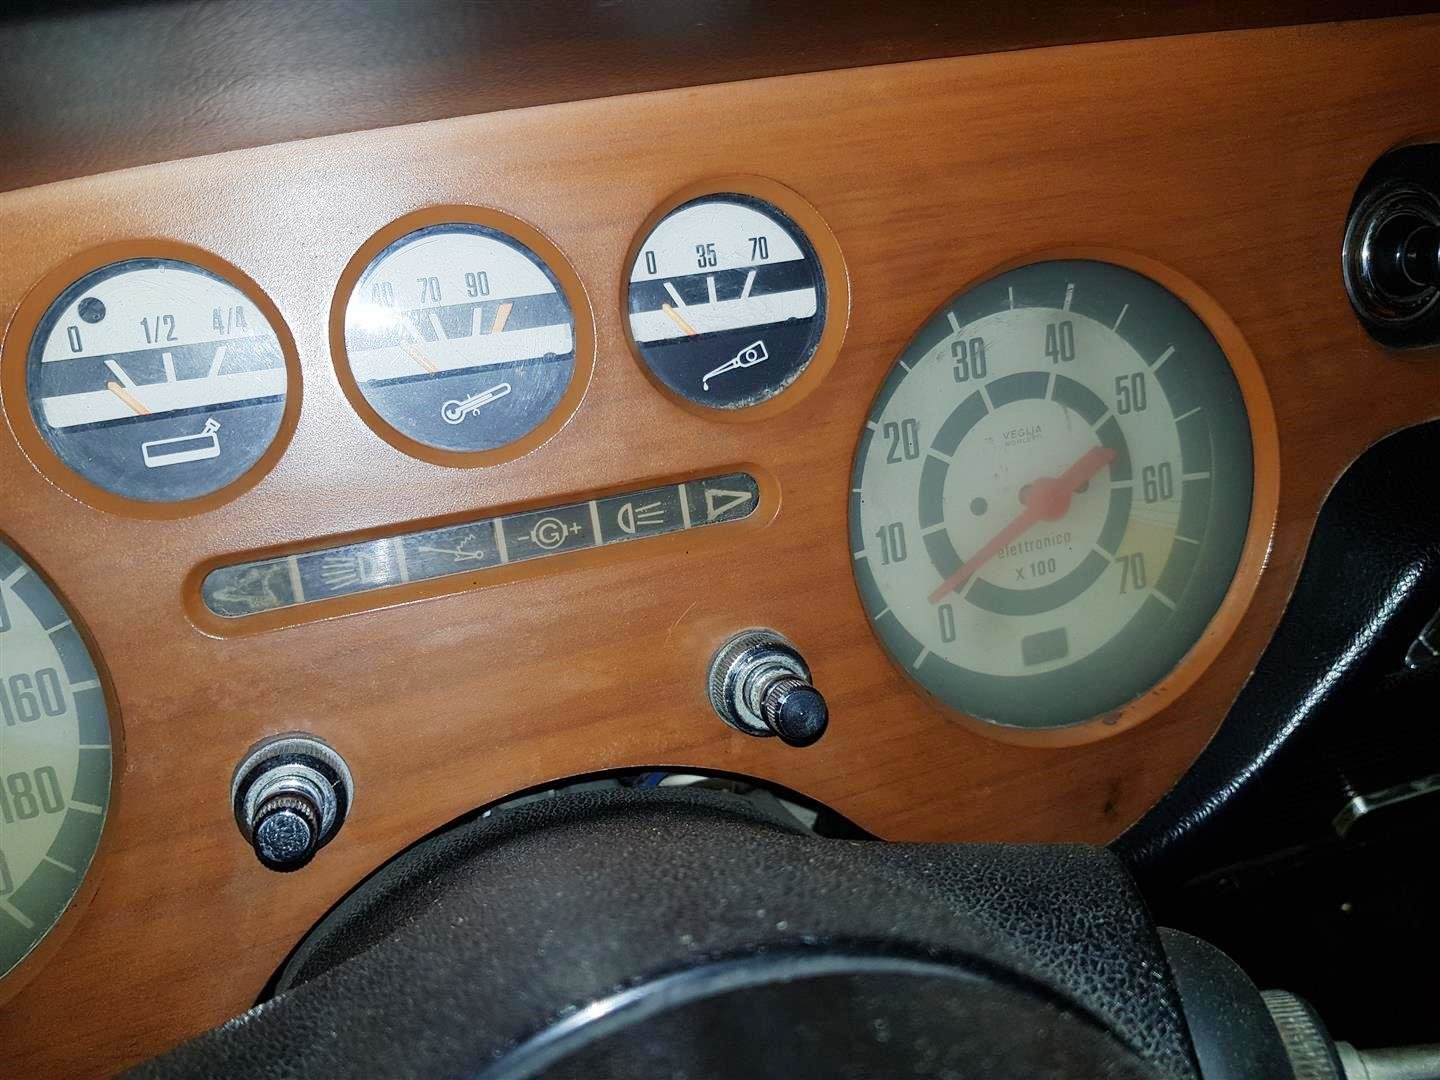 1974 Very nice Lancia Fulvia 1.3 S '74 For Sale (picture 4 of 6)